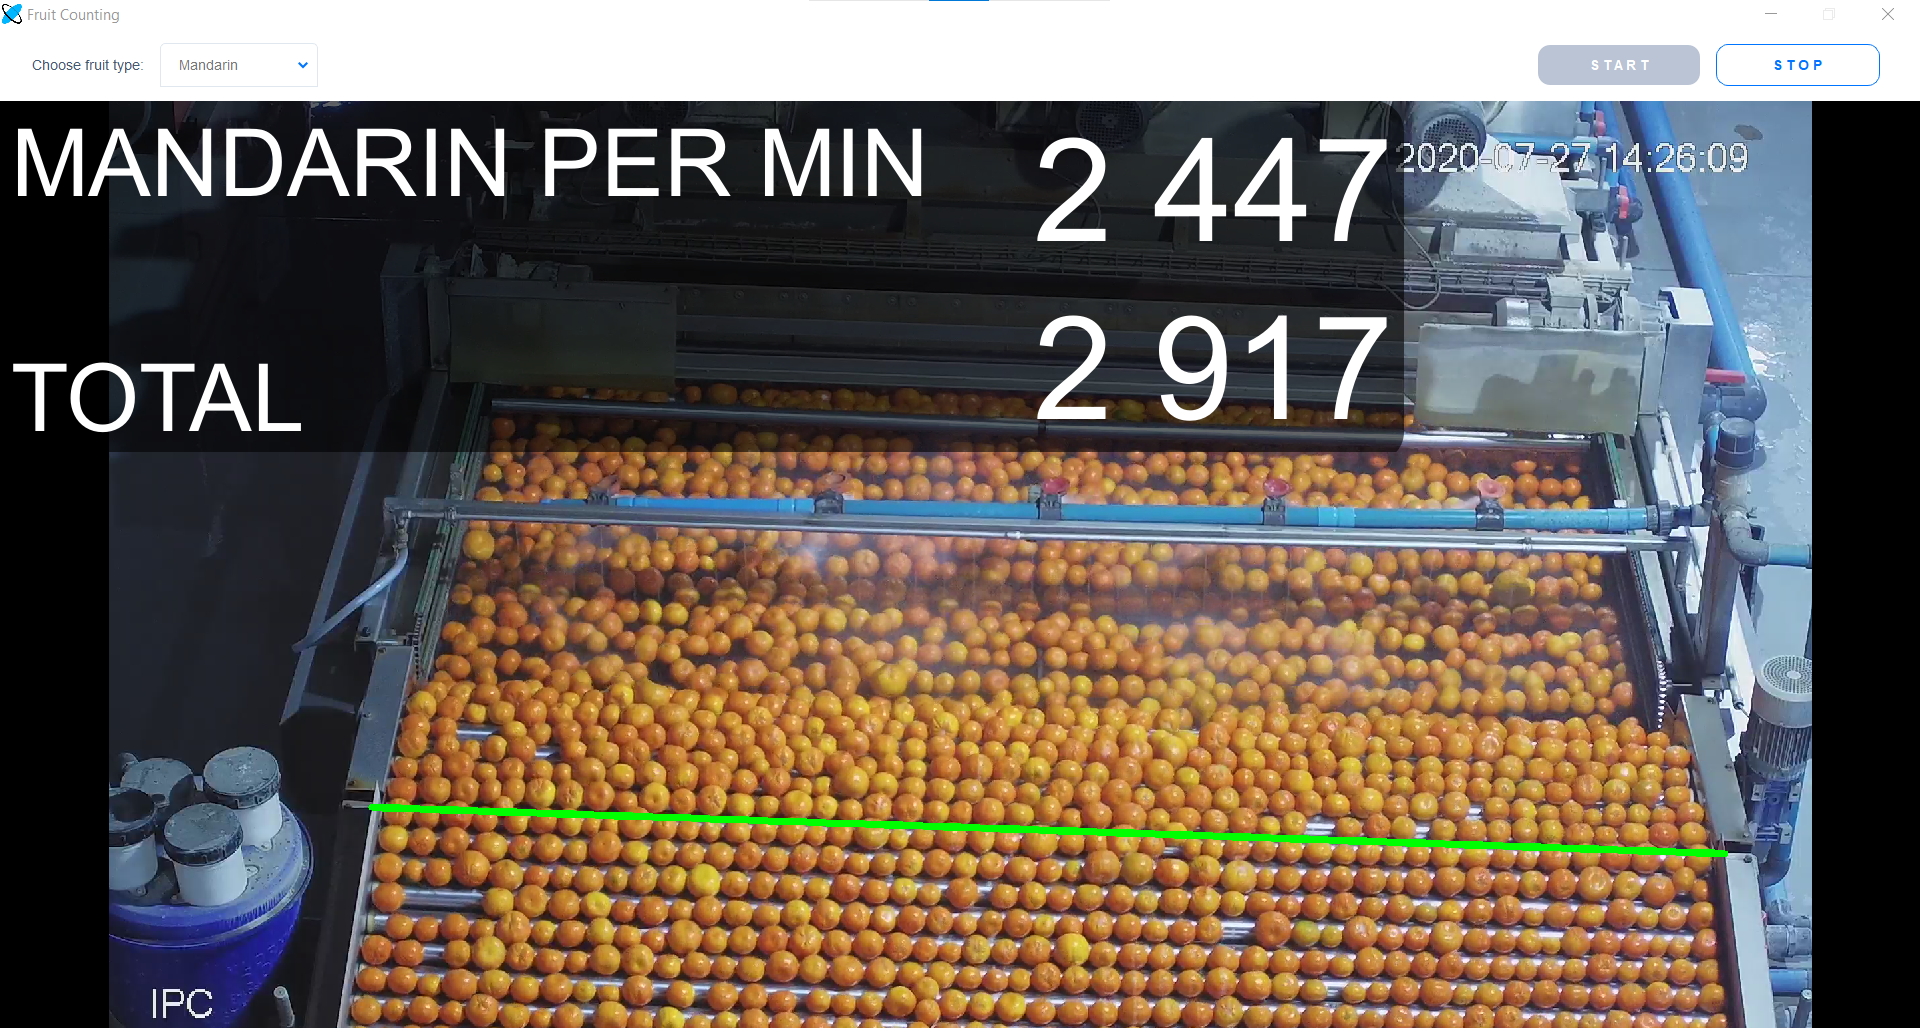 Abto Fruit Counting: Mandarin/Clementine Counting